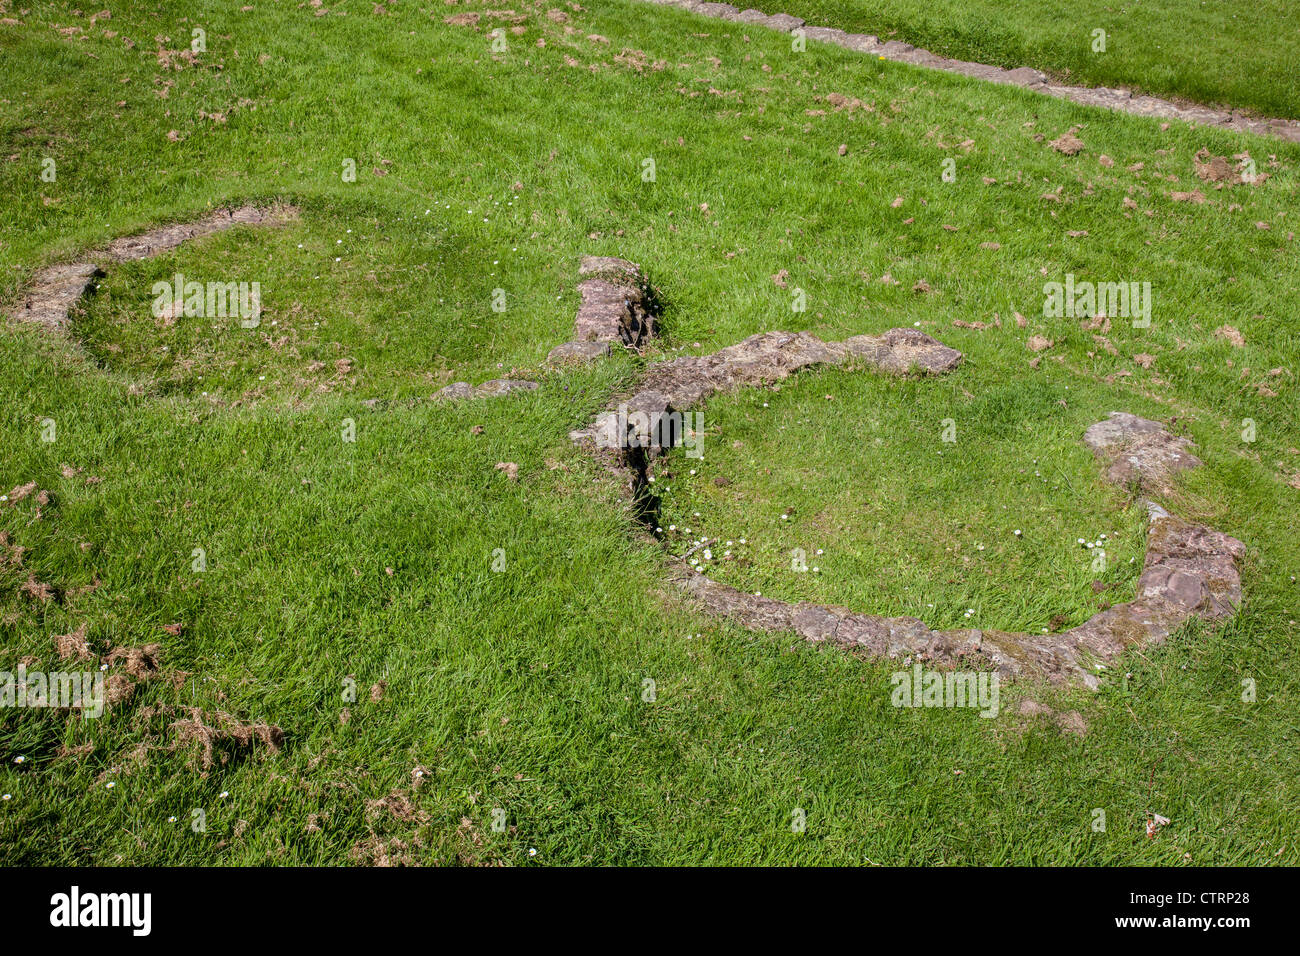 The circular stone remains of the ovens in the Roman LEgionary Barracks at Caerleon, Wales - Stock Image